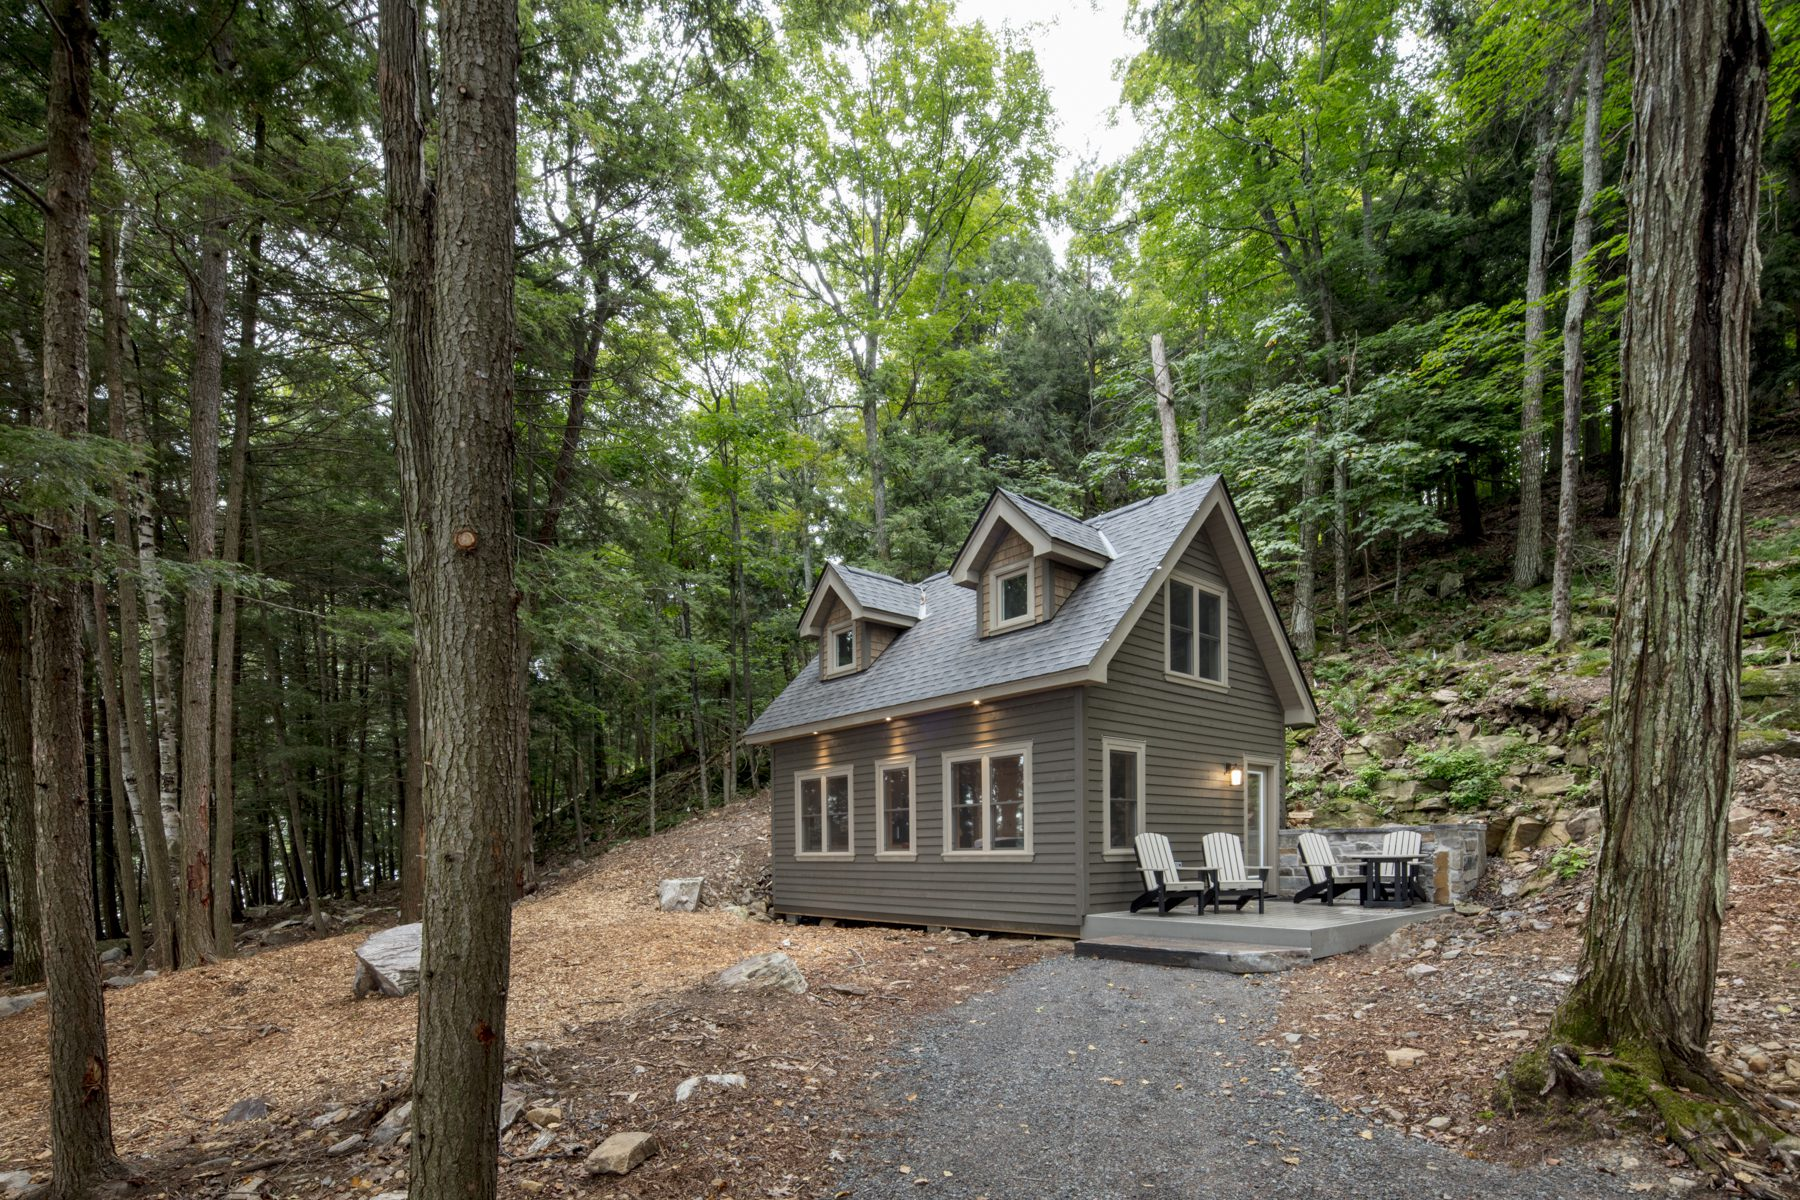 Normerica Timber Frame, Exterior, Cottage, Bunkie, Cabin 2